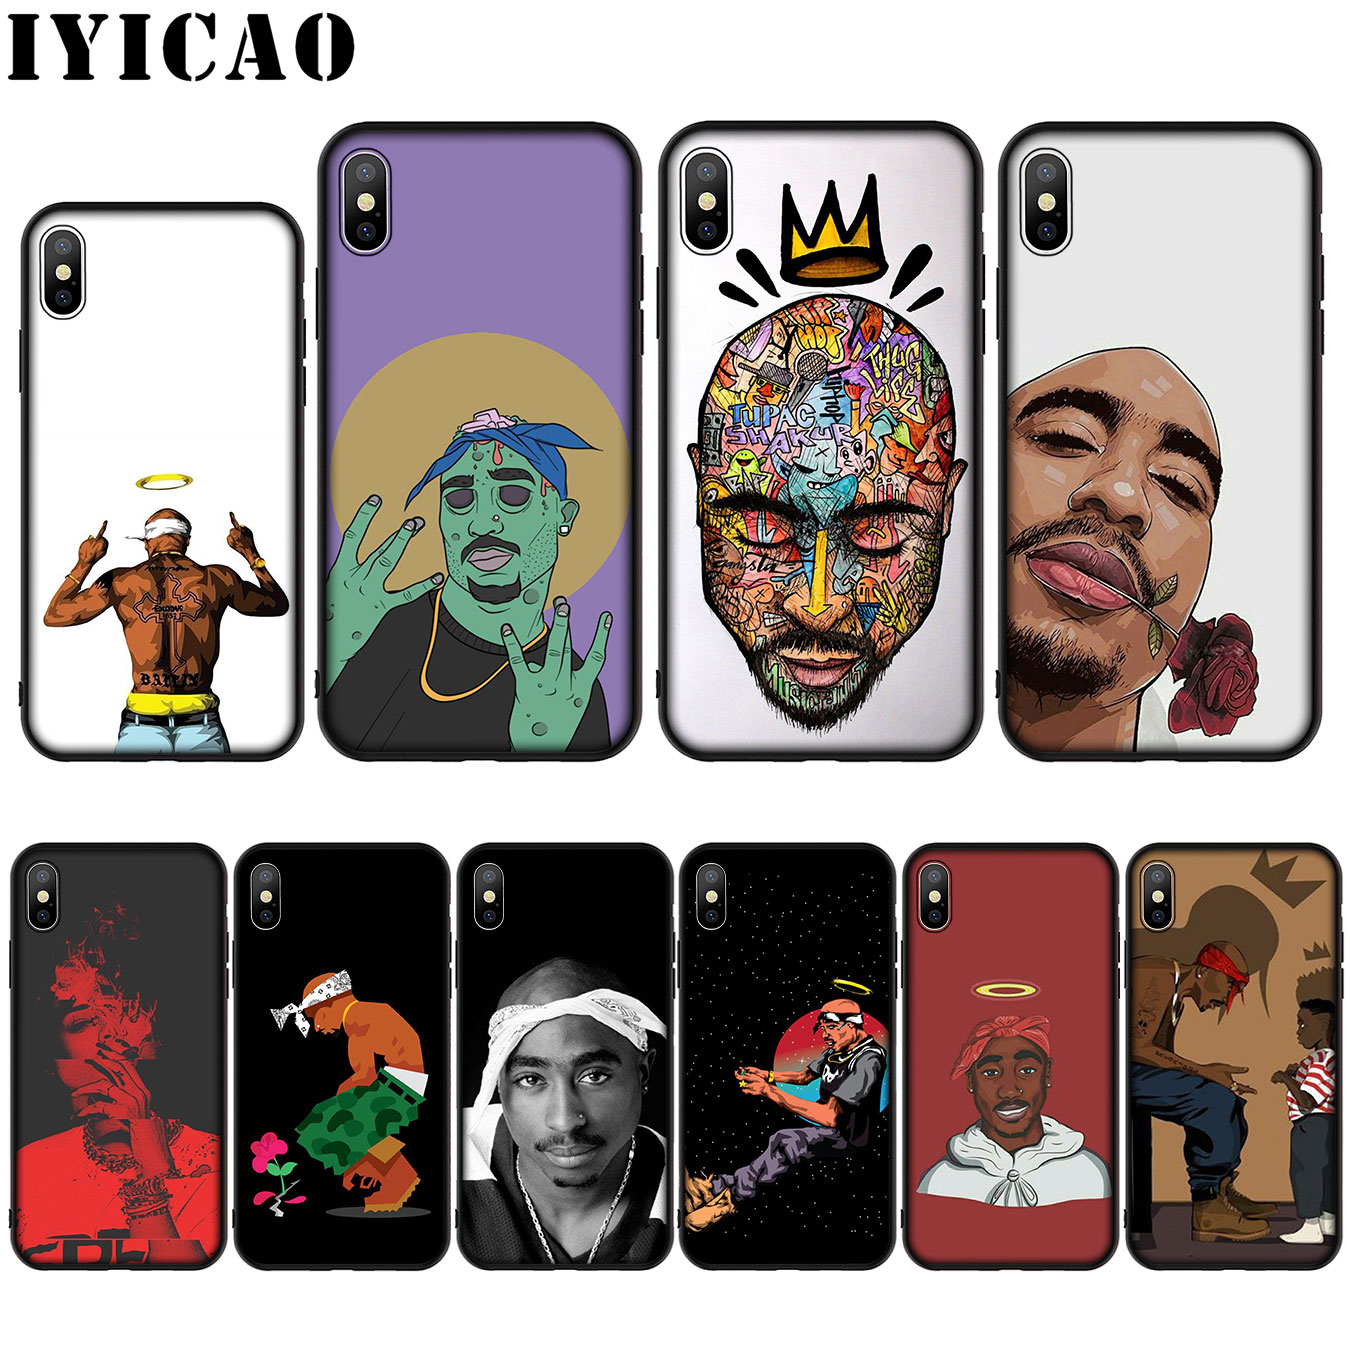 2Pac Tupac Shakur Super Deal Mobile love Silicone Soft Case for iPhone 11 Pro XS Max XR X 8 7 6 6S Plus 5 5S SE Cover image